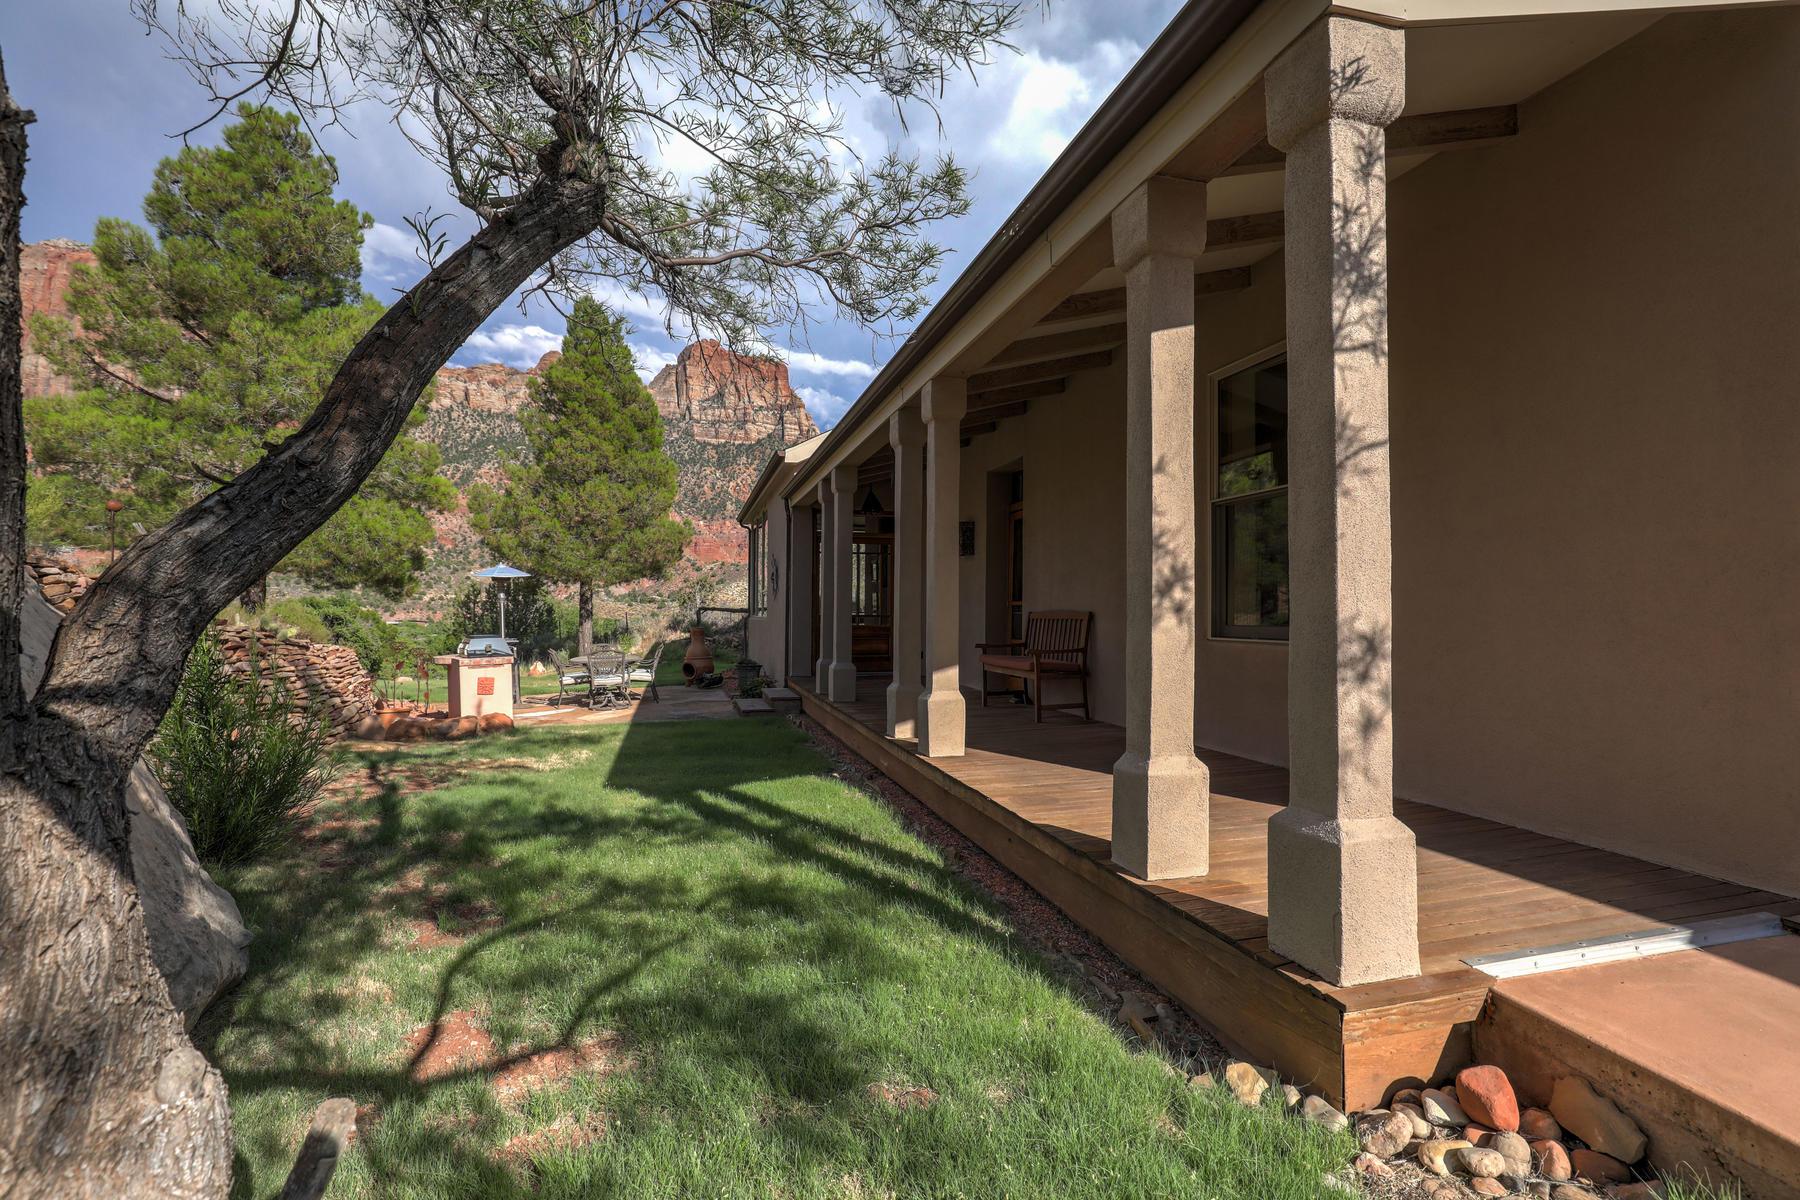 Single Family Homes for Sale at Craftsman Style Energy-Efficiency on Private 2.37 Acres in Zion 1510 Claret Cup Lane, Springdale, Utah 84767 United States